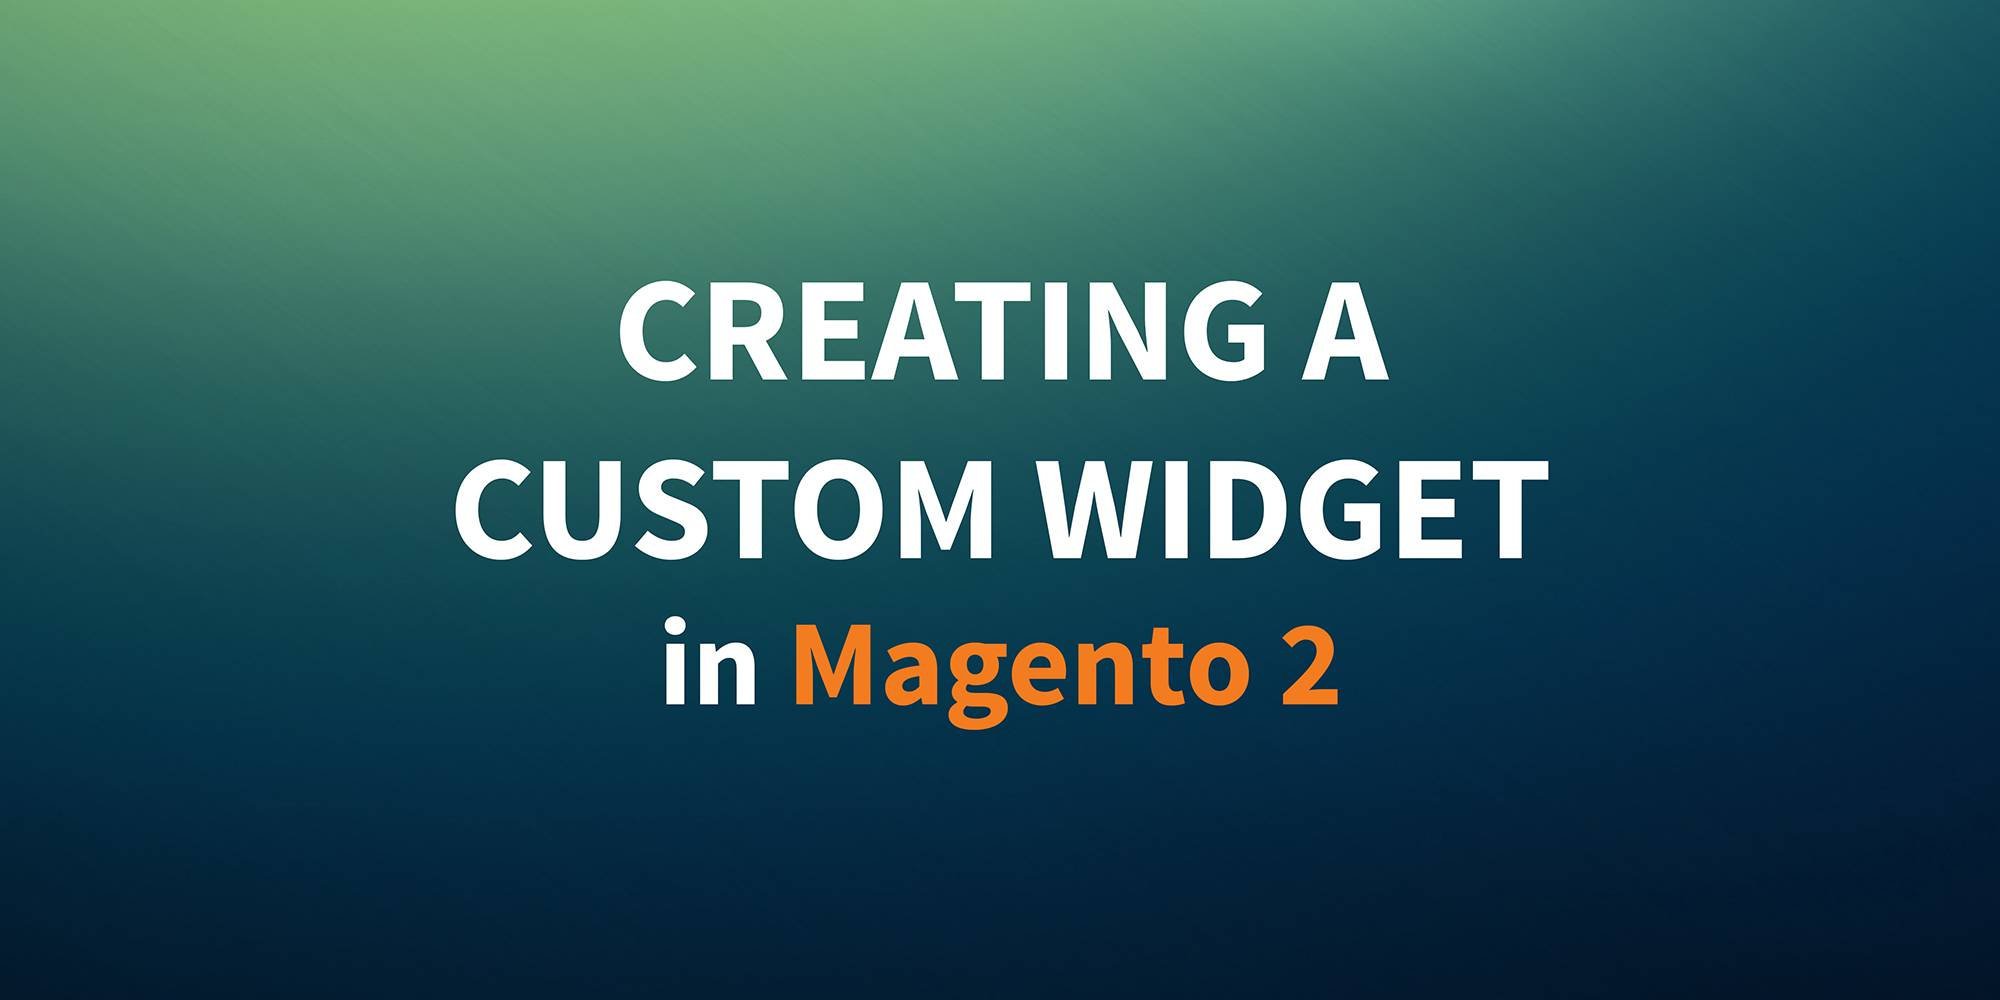 classyllama: New post up on the blog! 'Creating a Custom Widget in Magento 2' nnCheck it out: https://t.co/sFK0pyQKNN #realMagento #MagentoImagine